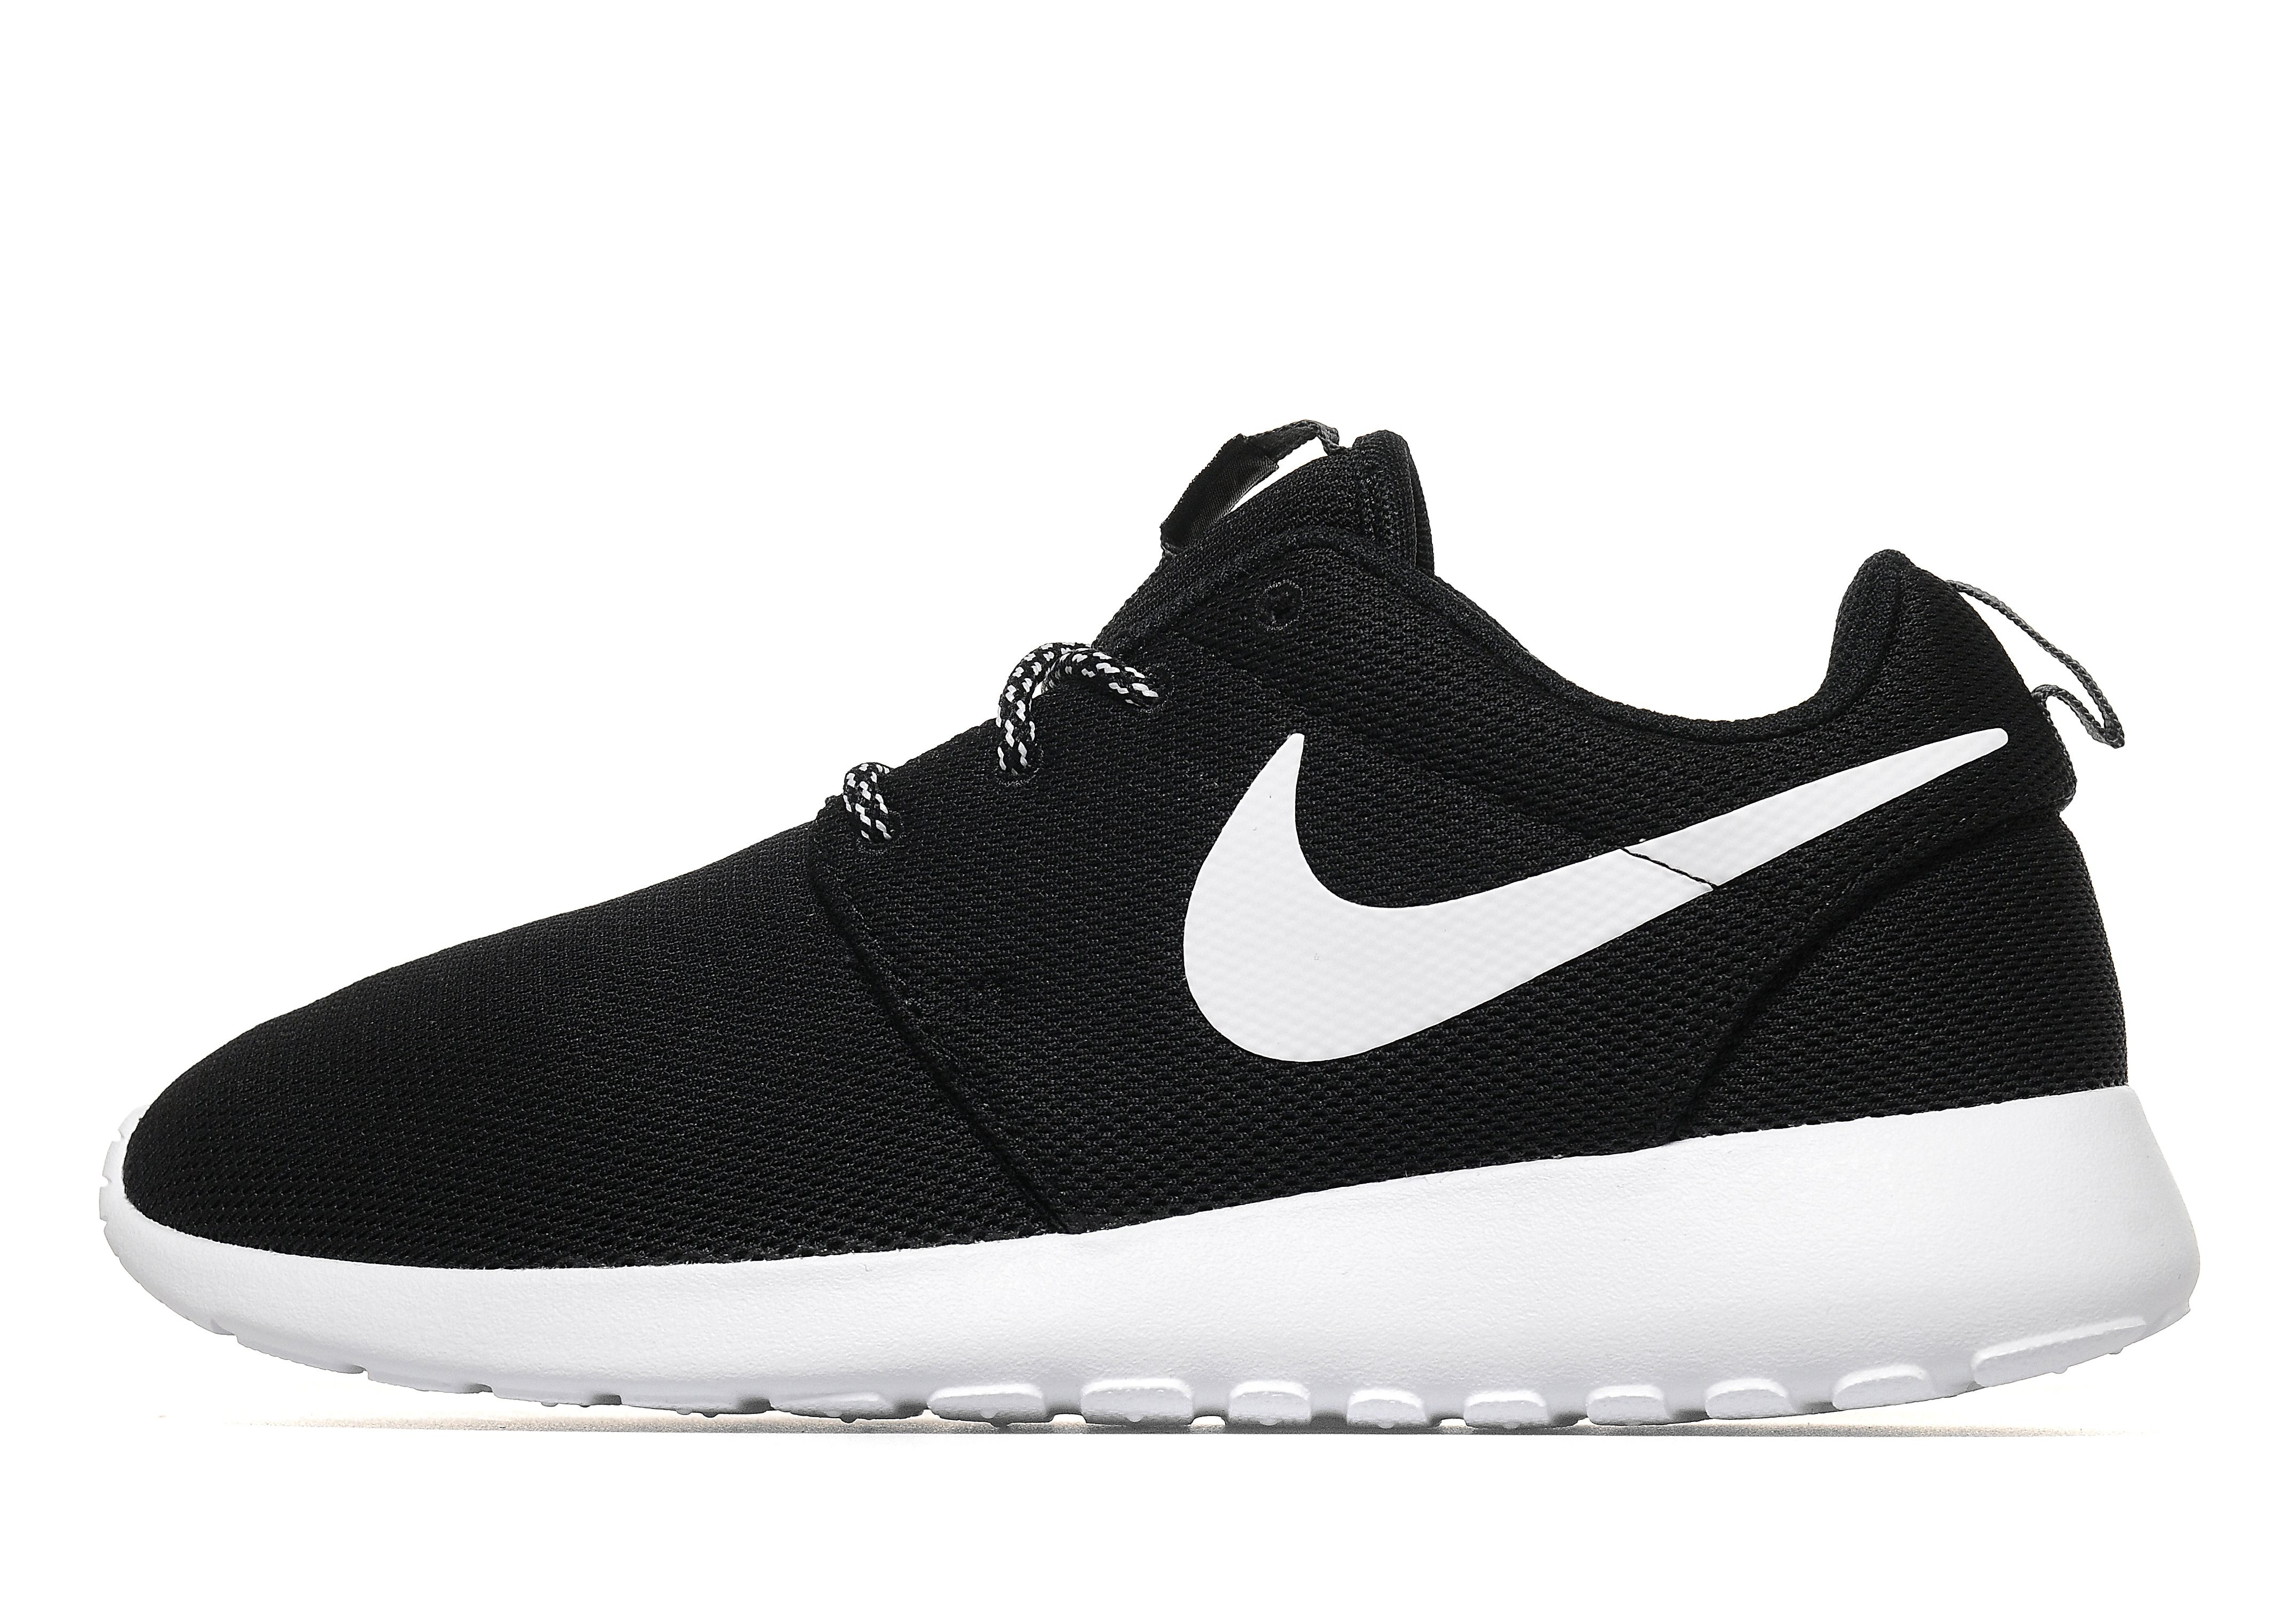 Nike Roshe One Women's